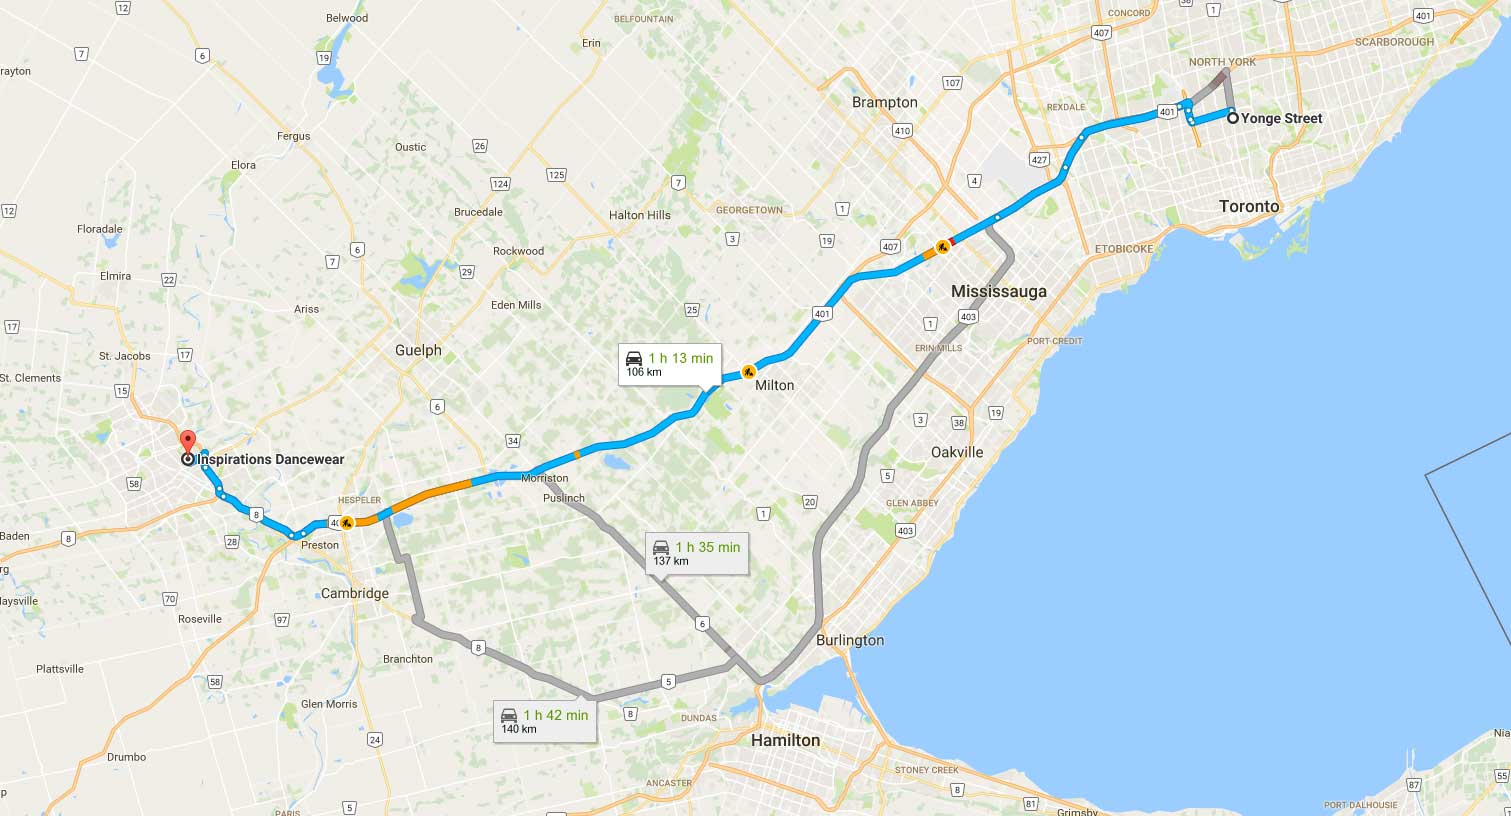 map of driving directions from toronto to inspirations dancewear in kitchener